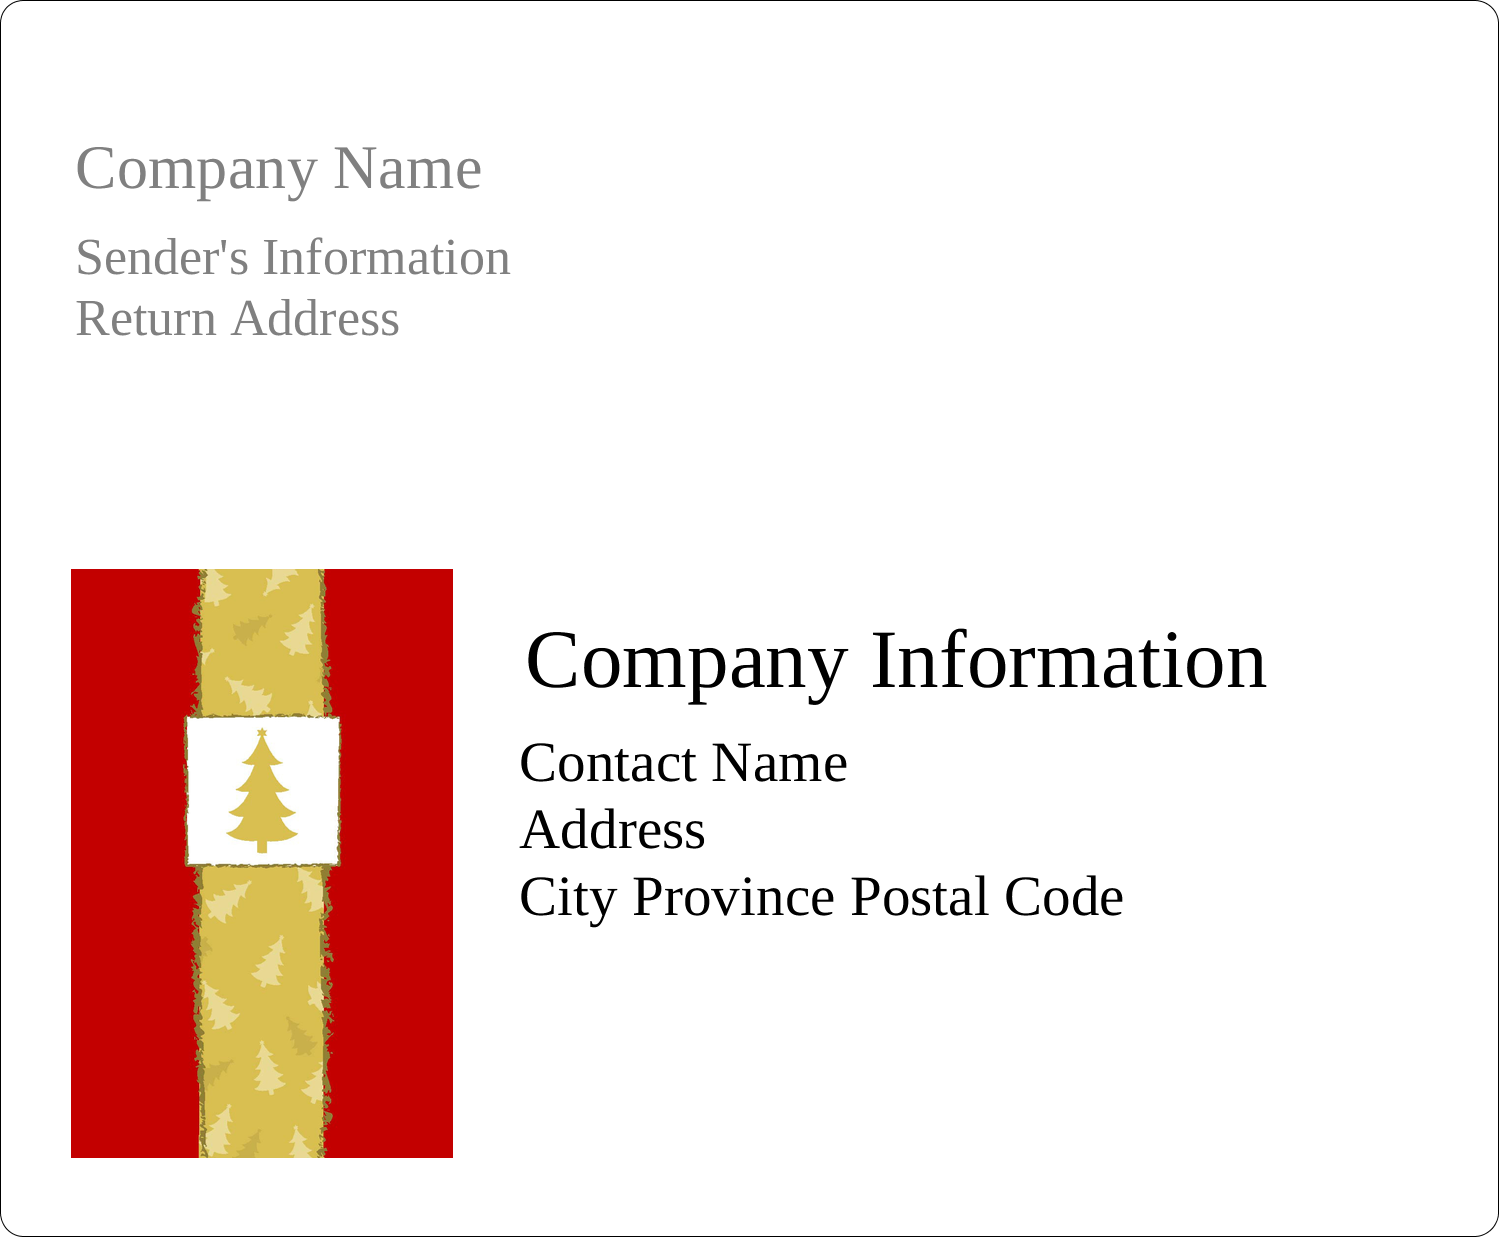 "4"" x 3⅓"" Shipping Label - Christmas Red Tree"